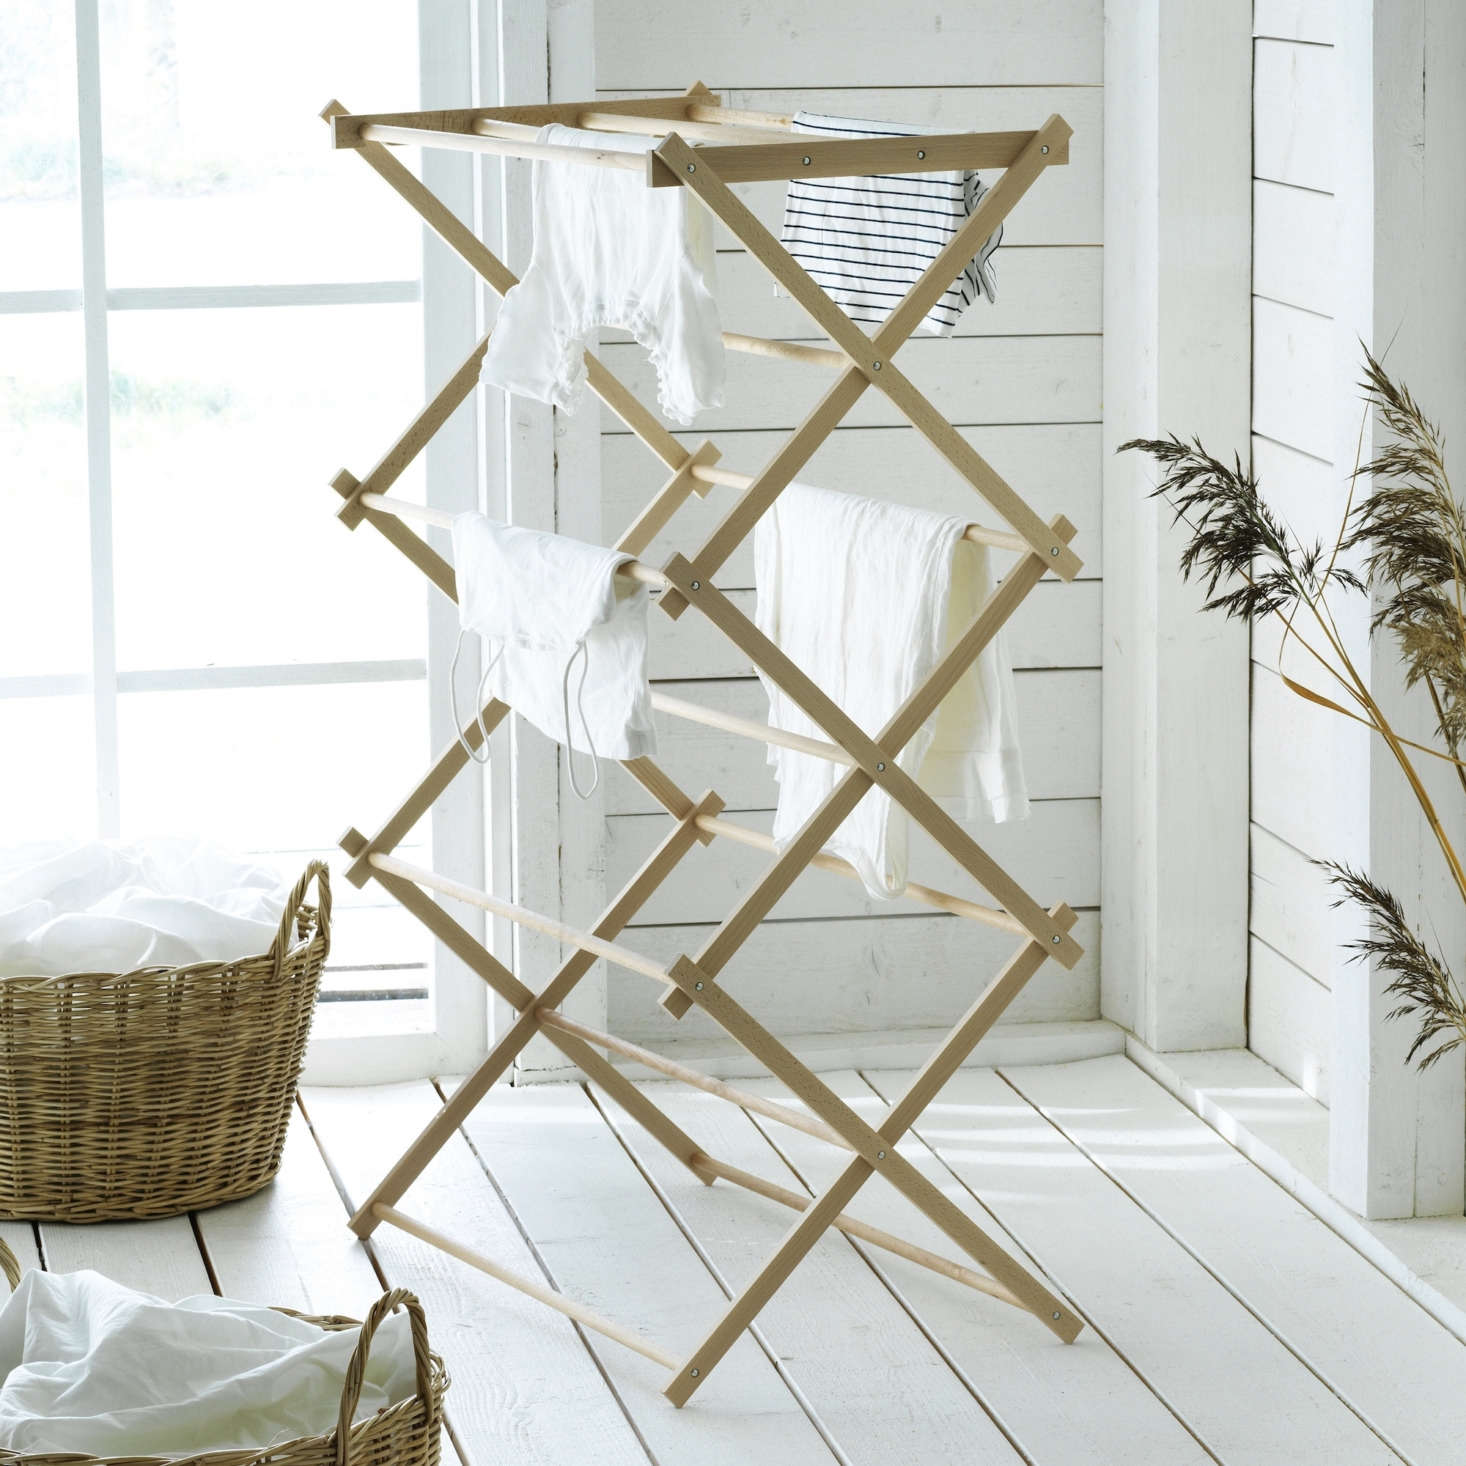 The Borstad line includes laundry solutions like a solid beech Drying Rack ($34.99) and a Basket with Handles ($.99).